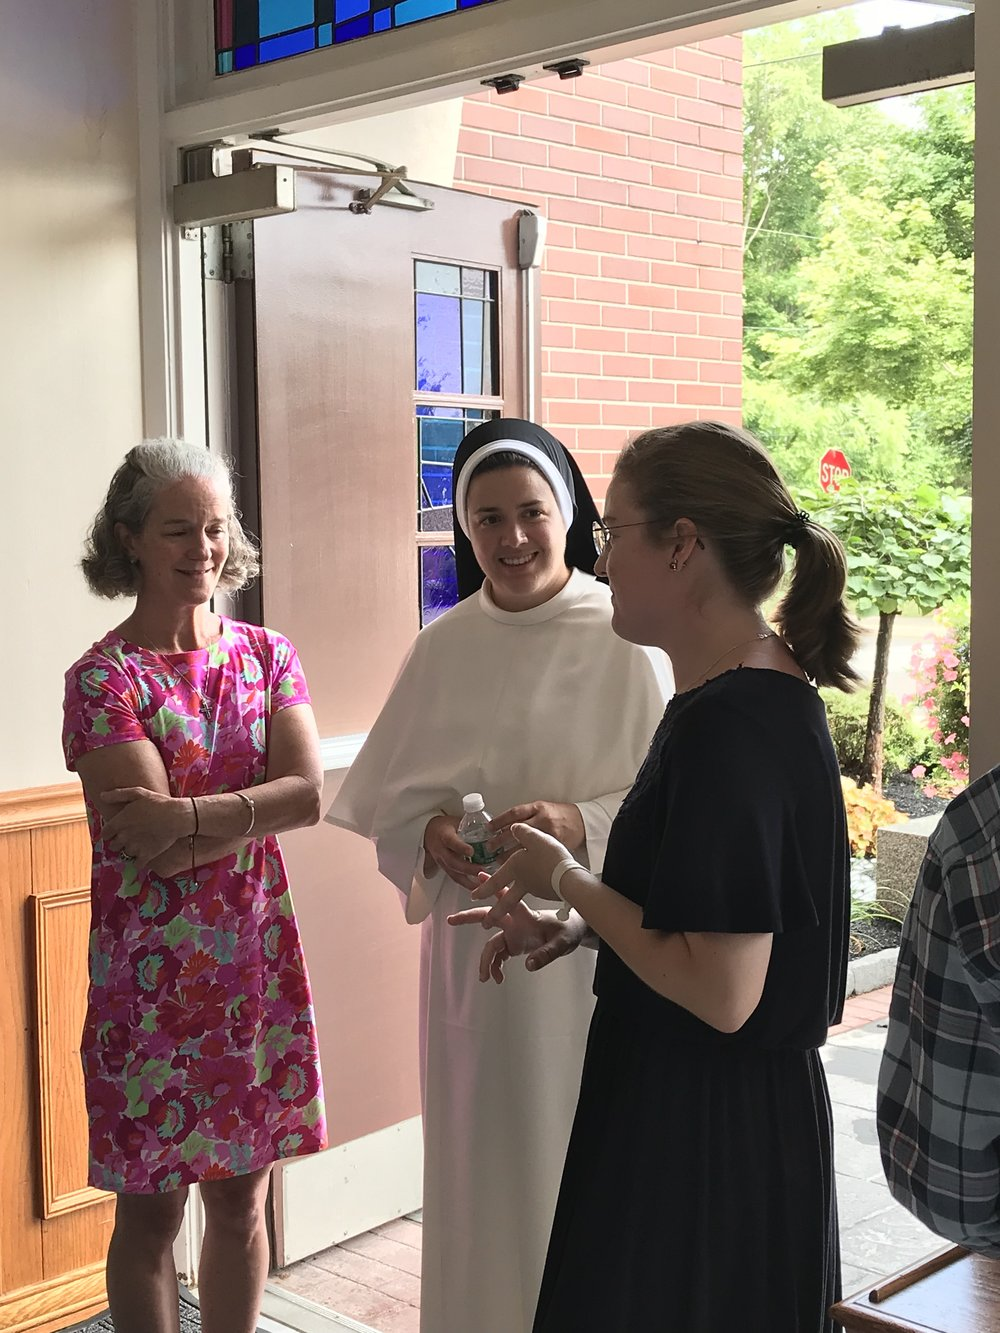 Sr. Maria Francesca, O.P.  chats with Laura and her mother at the reception following Mass.